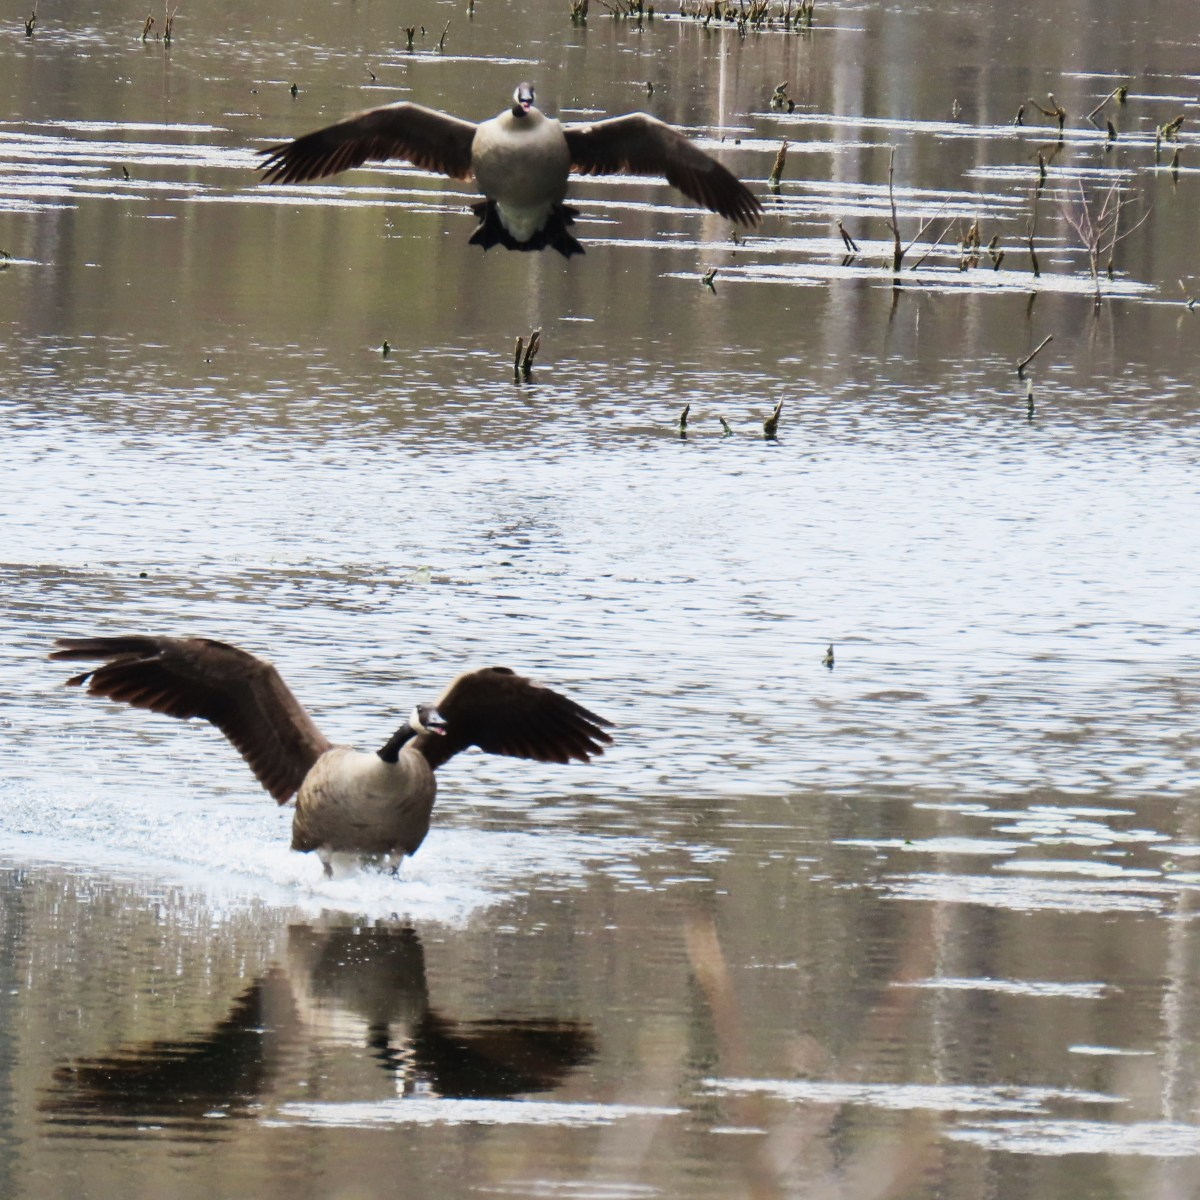 Two geese touching down in the water